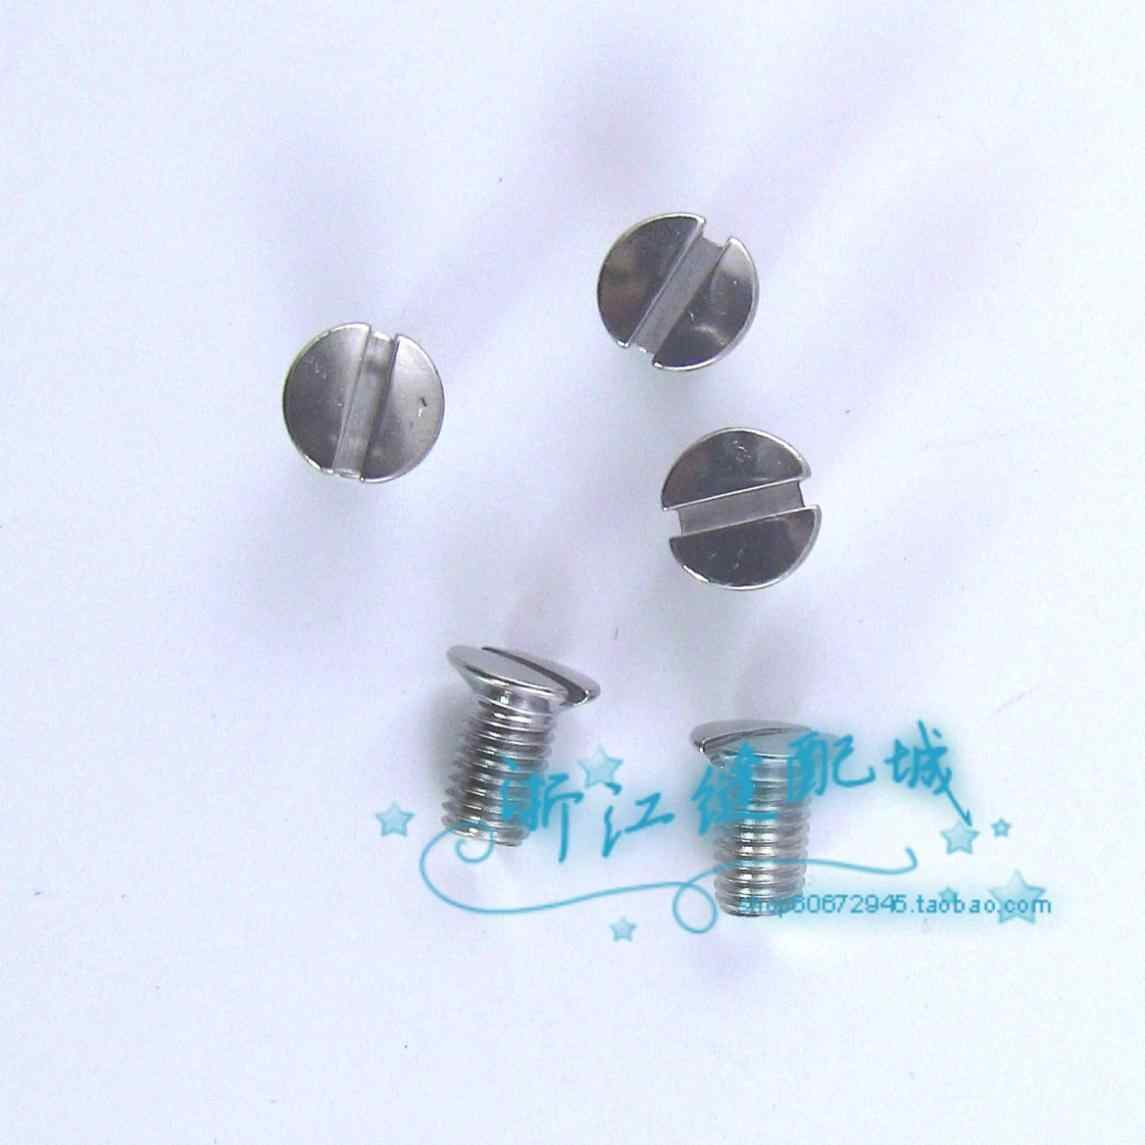 needle plate screw for lockstitch sewing machine